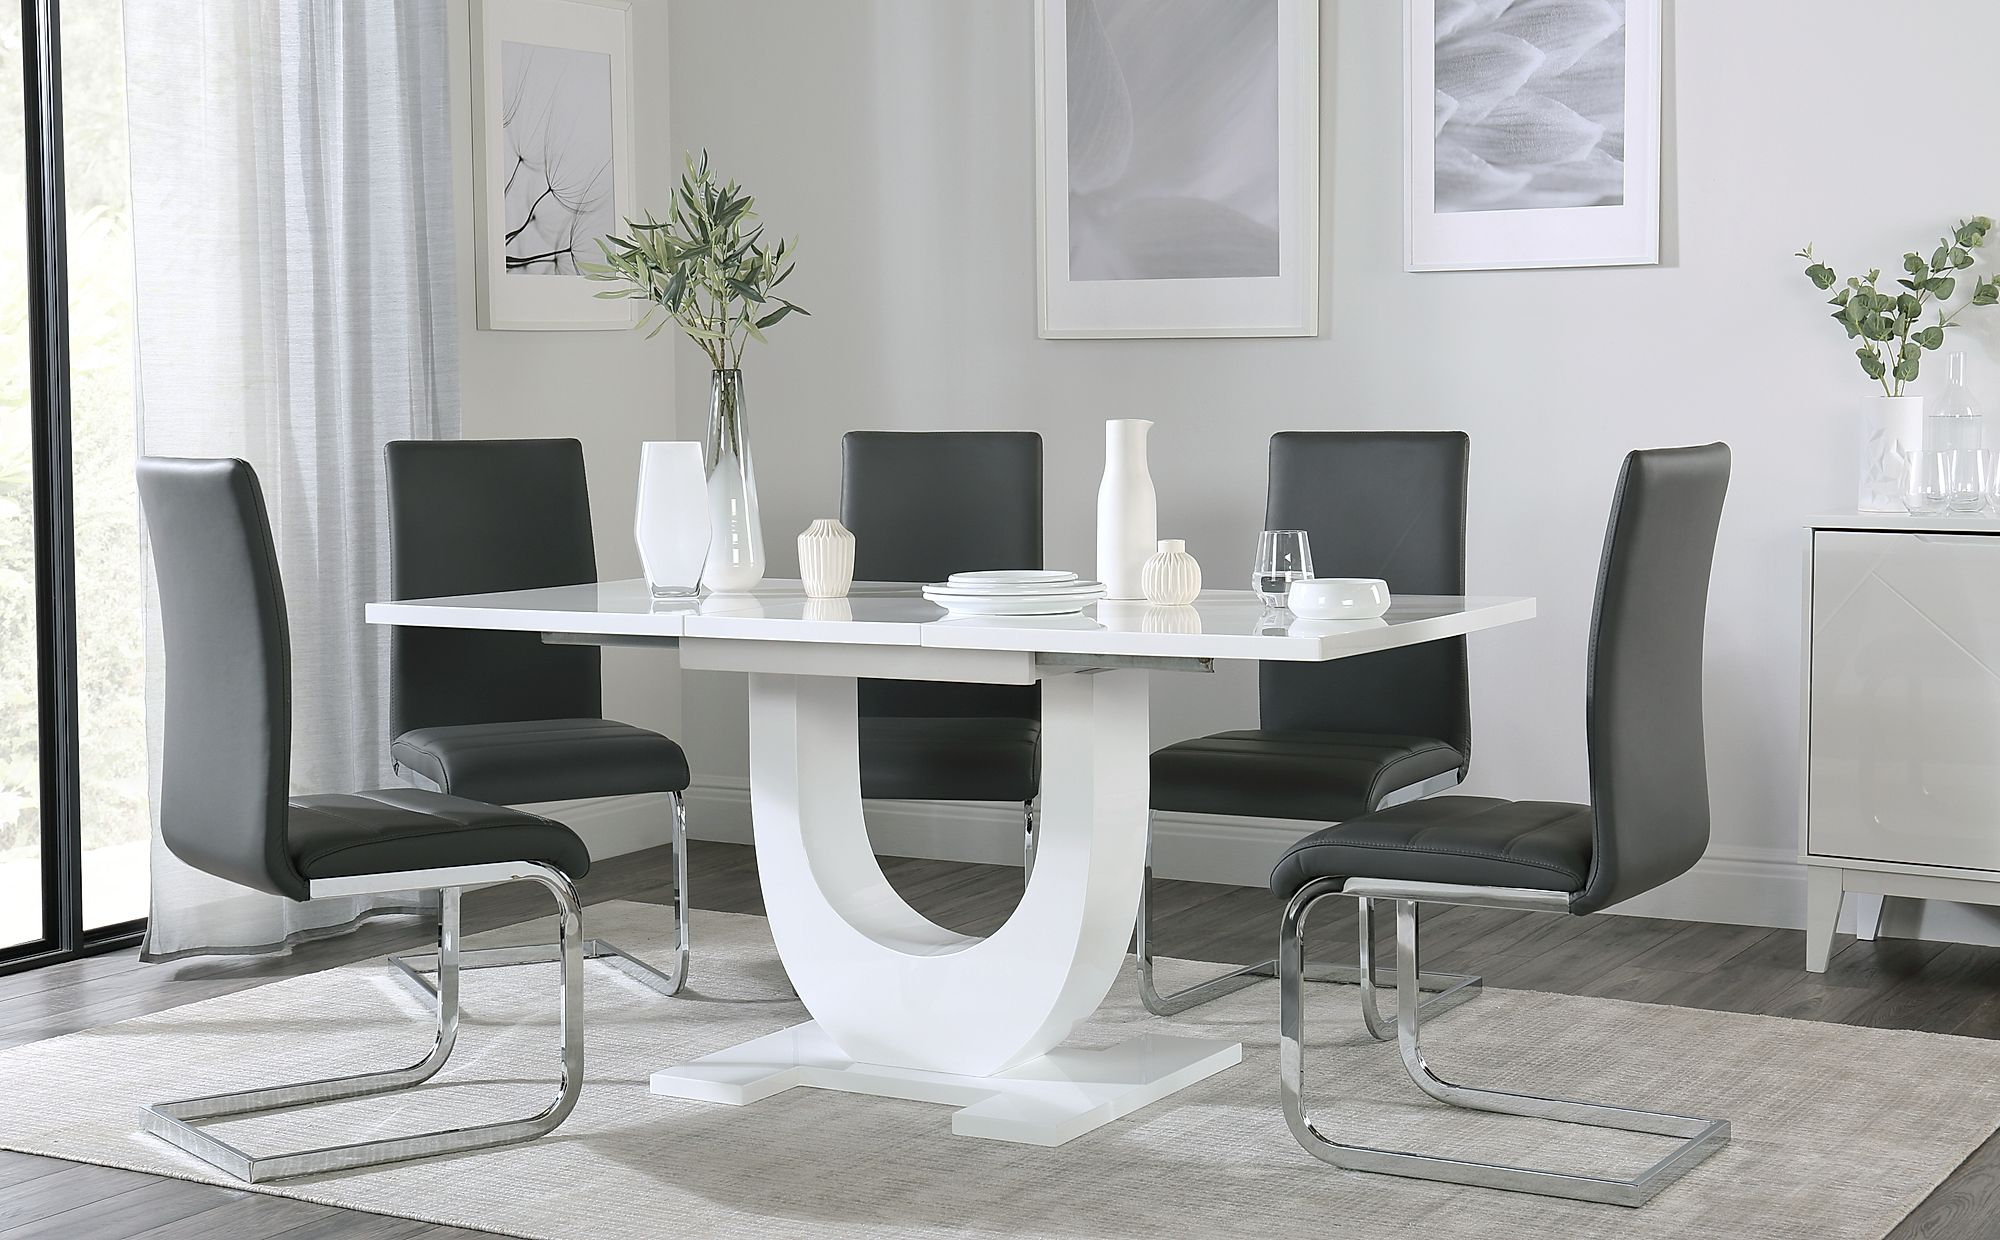 Oslo White High Gloss Extending Dining Table With 4 Perth